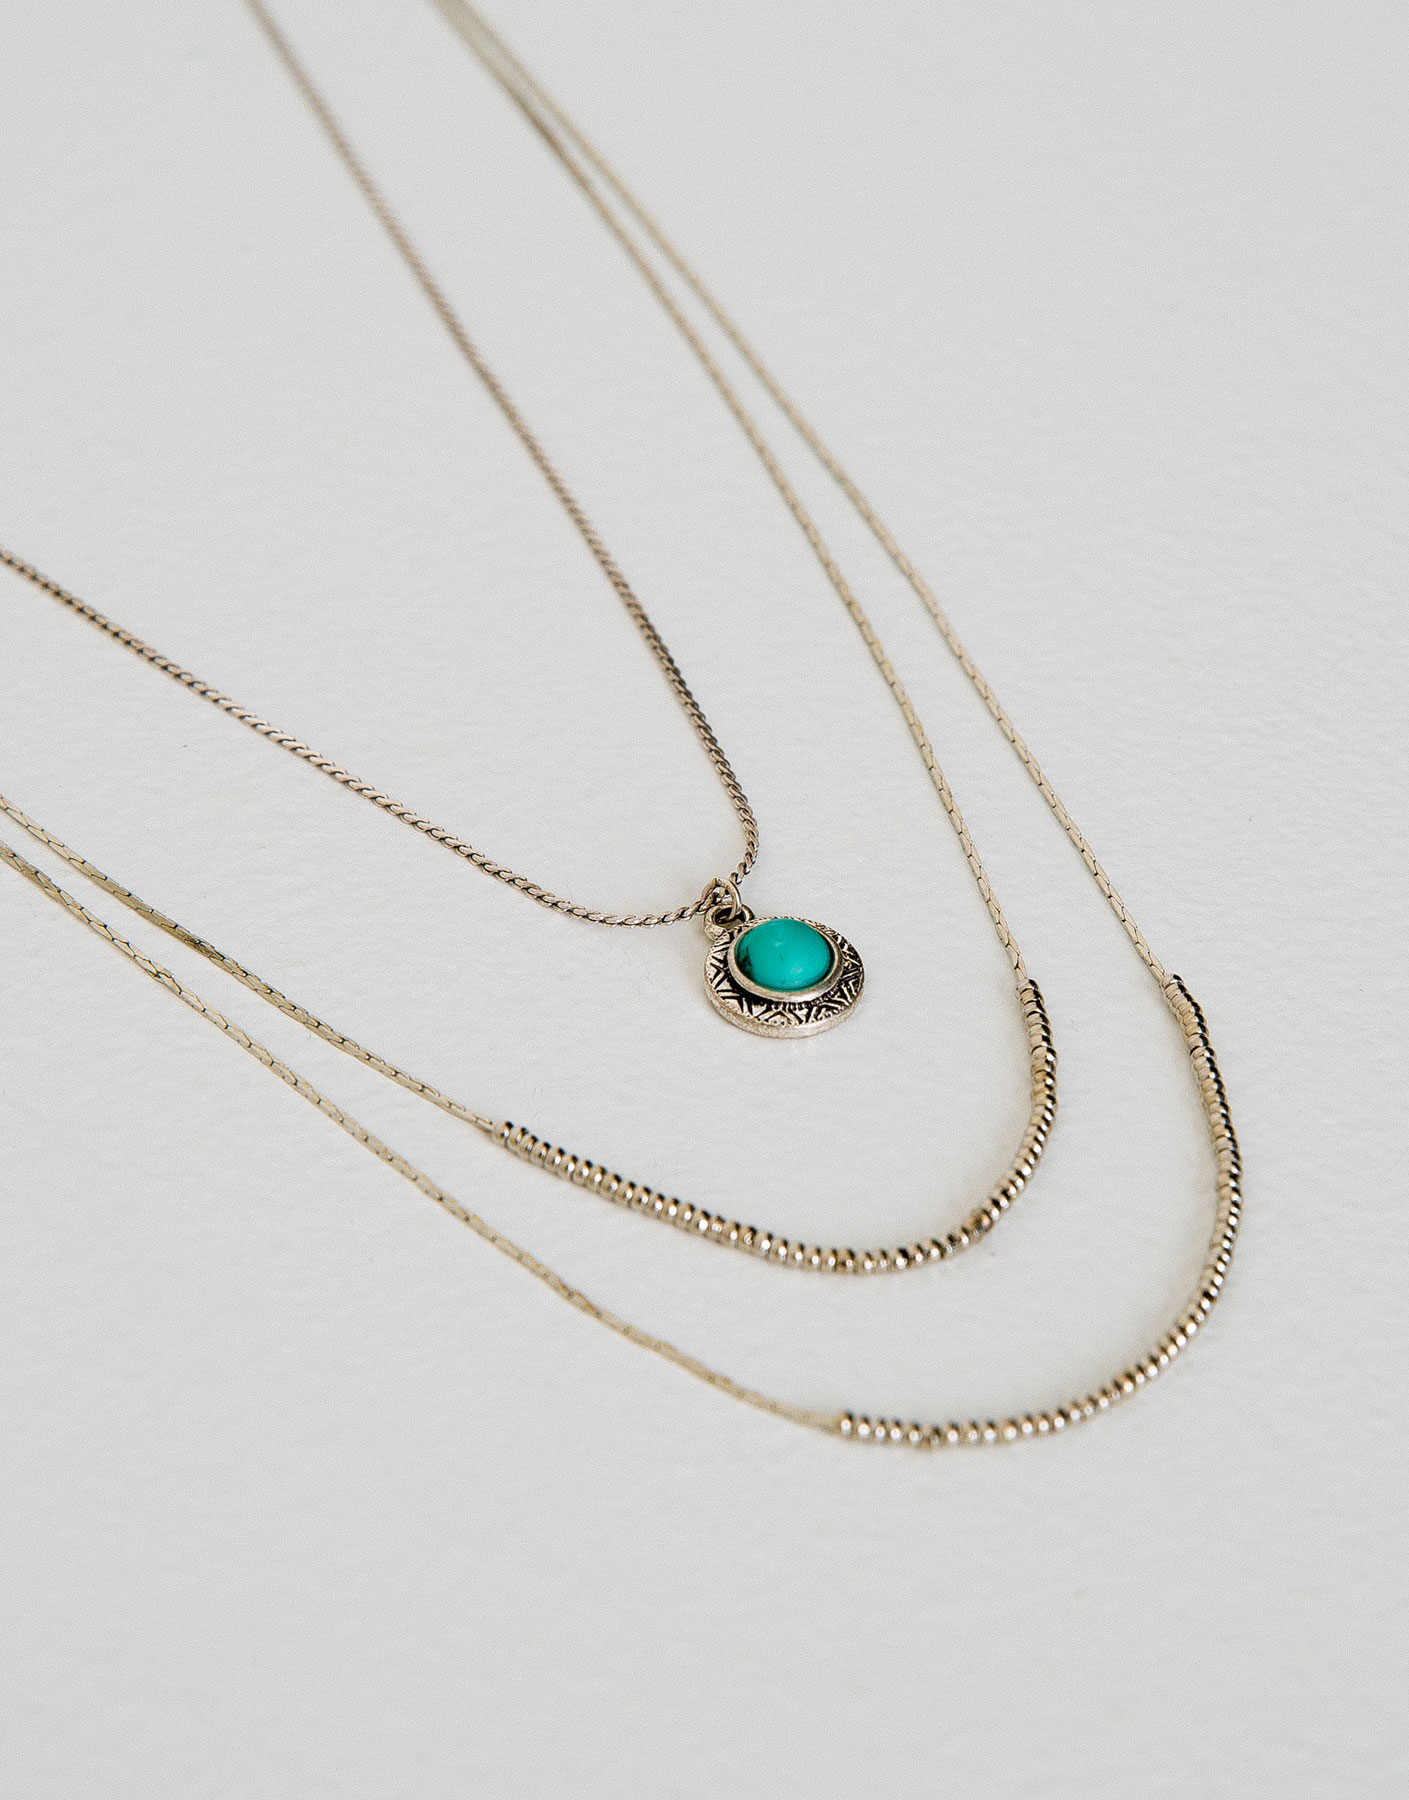 2-pack of fine turquoise necklaces